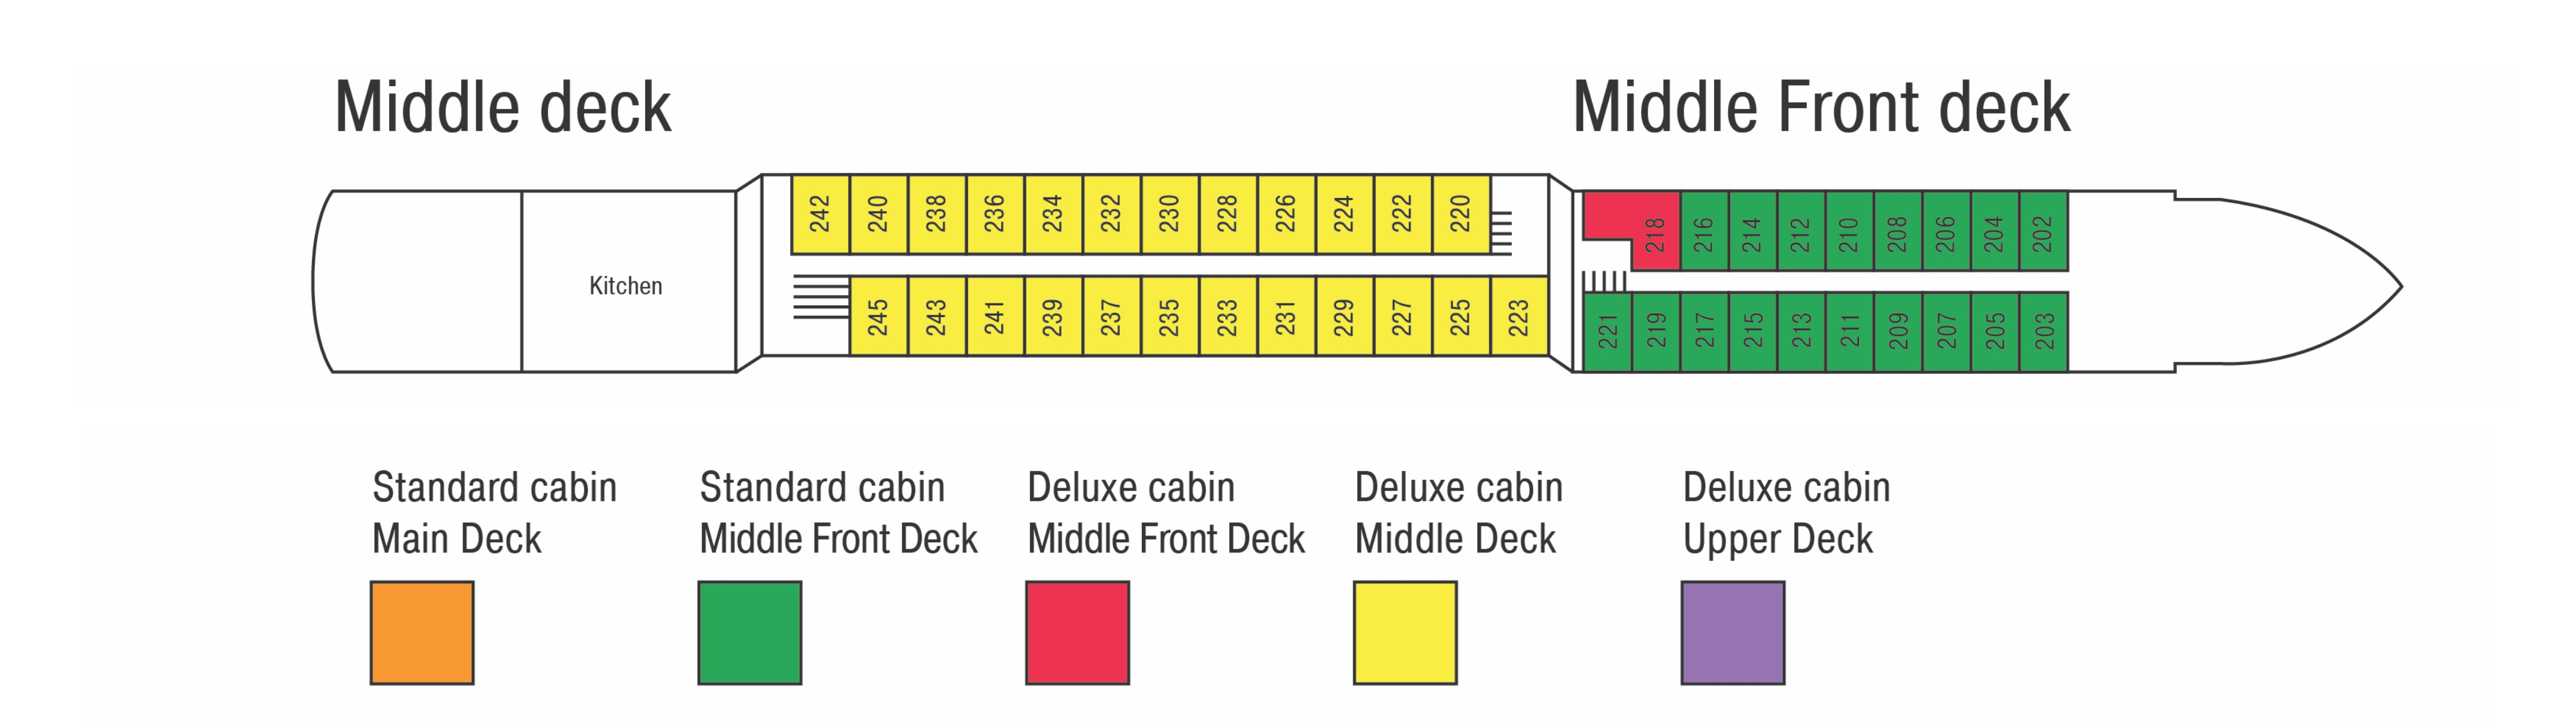 MS Crucebelle, Middle Deck